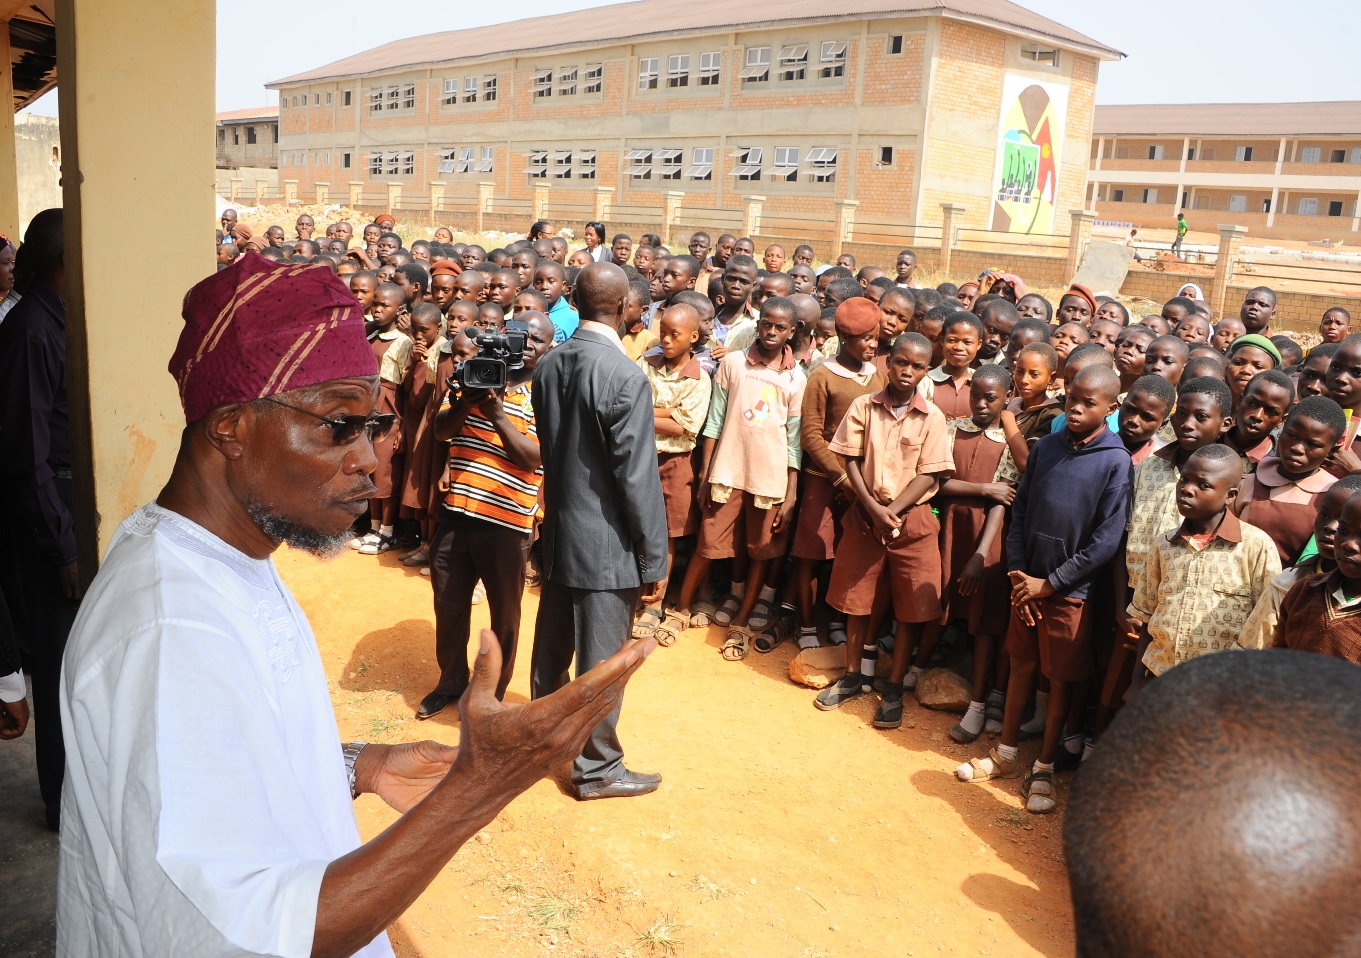 Governor State of Osun, Ogbeni Rauf Aregbesola (left), discussing with the Principal CAC Middle School 1 Araromi, Mrs Daodu Folagogun (2nd right) and Principal CAC Middle School 2 Araromi, Mrs Adetunberu Olukemi (right), during the inspection of the on going Construction of CAC Middle School Araromi Osogbo. on Wednesday 9-12-2015.